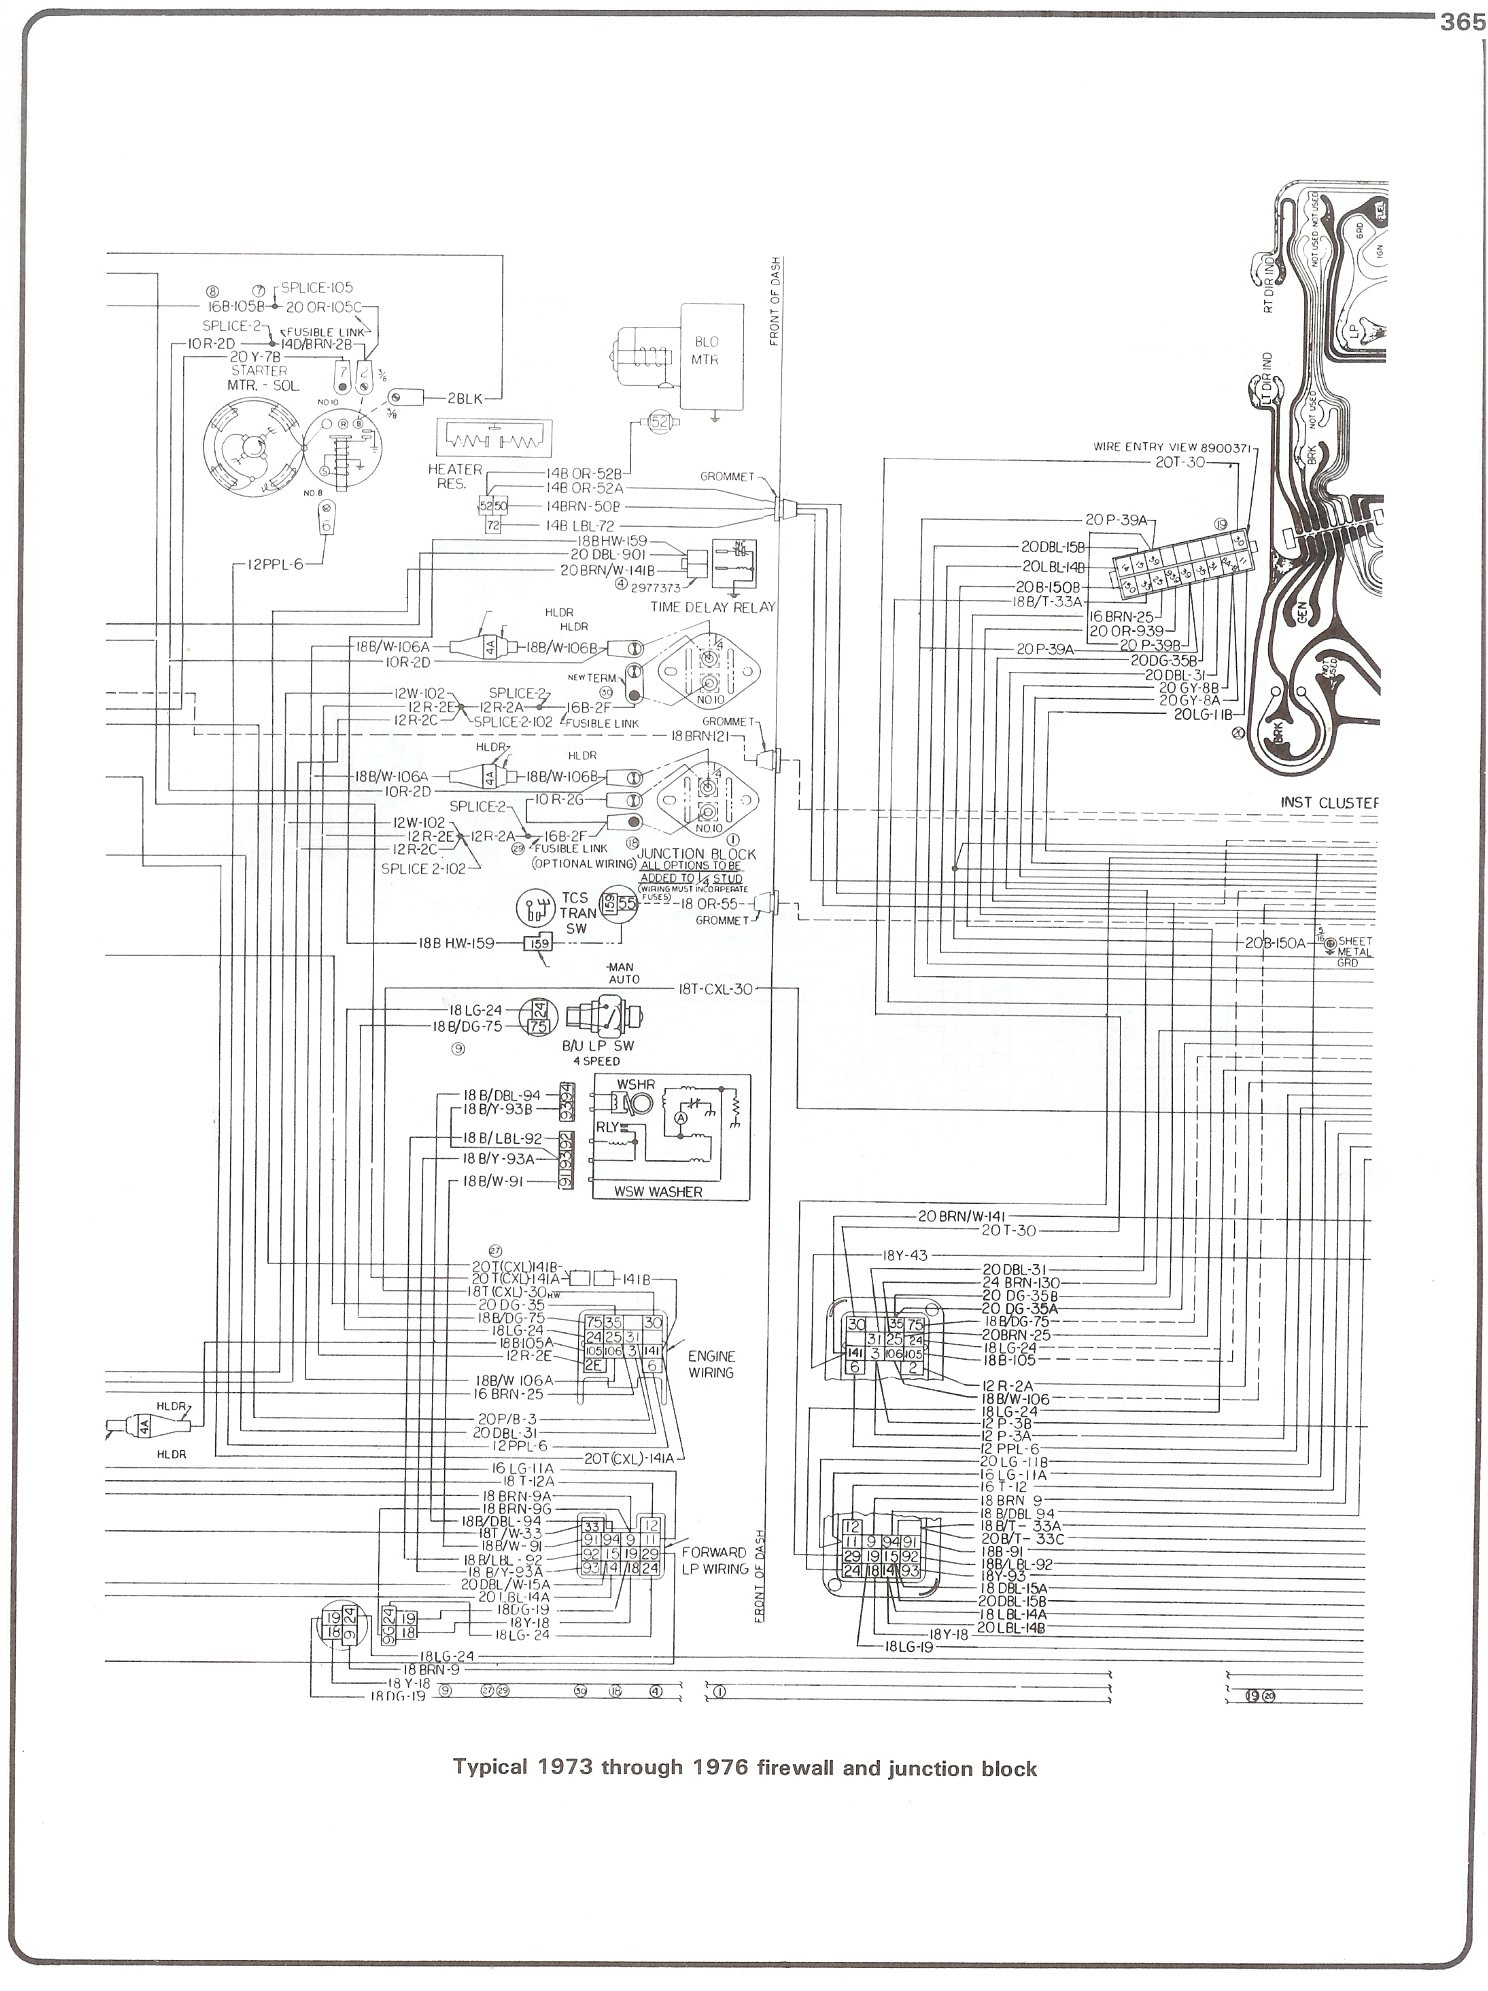 73 76_firewall_junct complete 73 87 wiring diagrams fuse box diagram 1981 chevy truck at bakdesigns.co